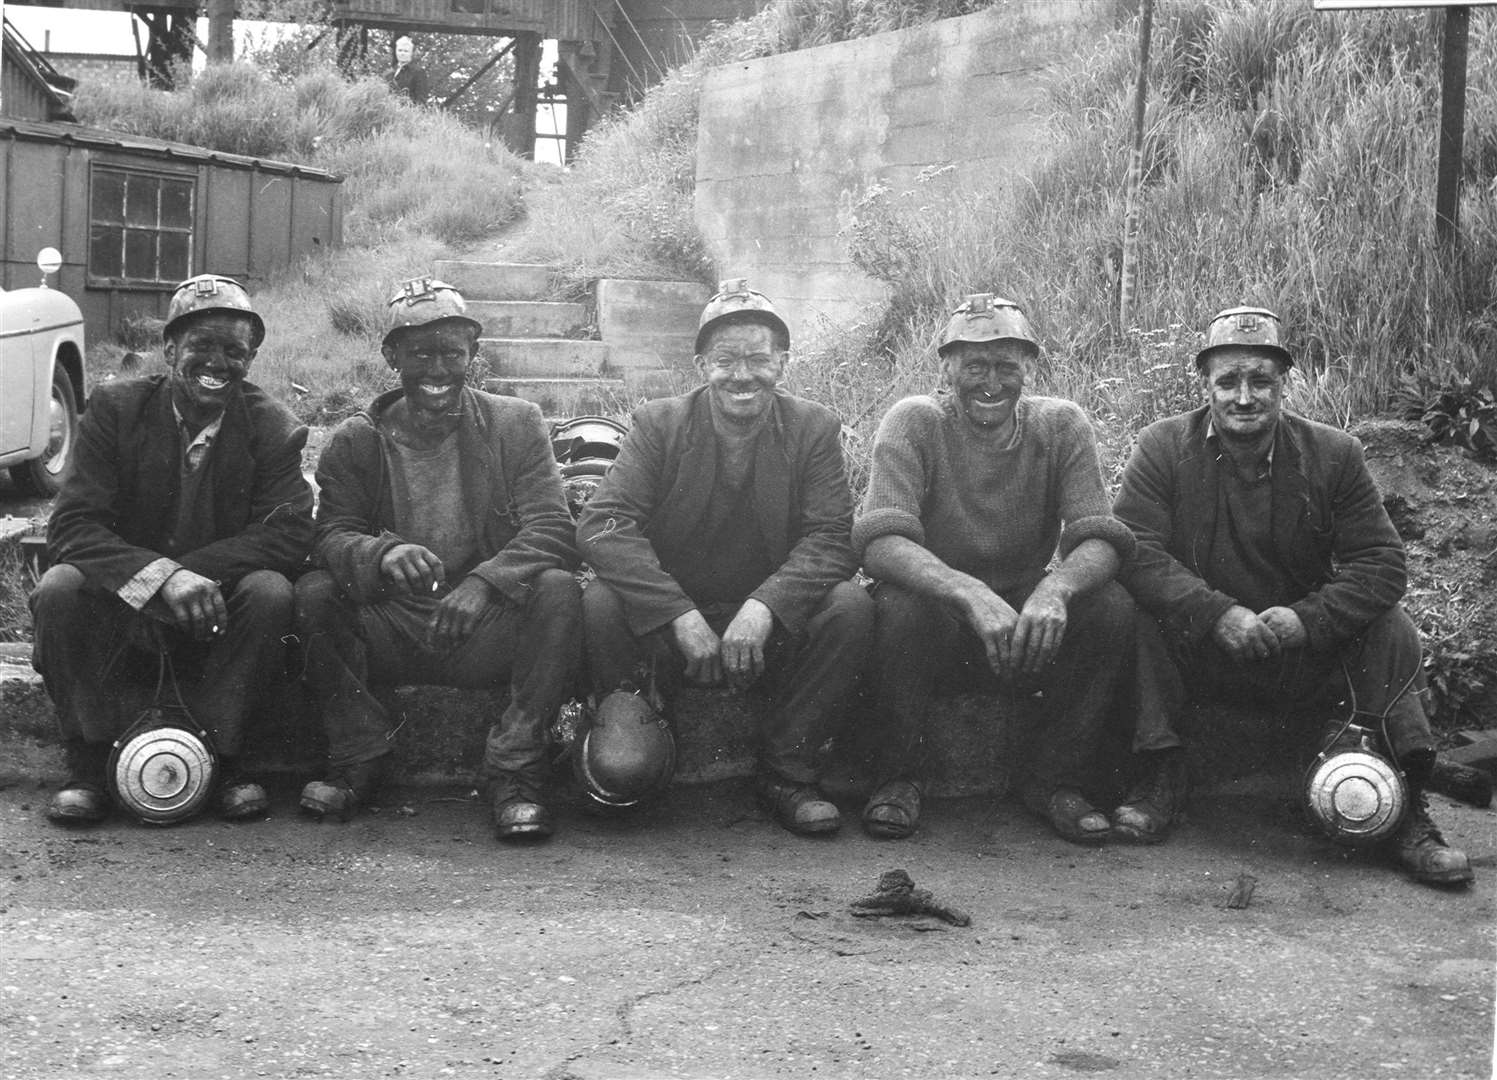 Fresh out of the pit, these bygone miners line up for a photo